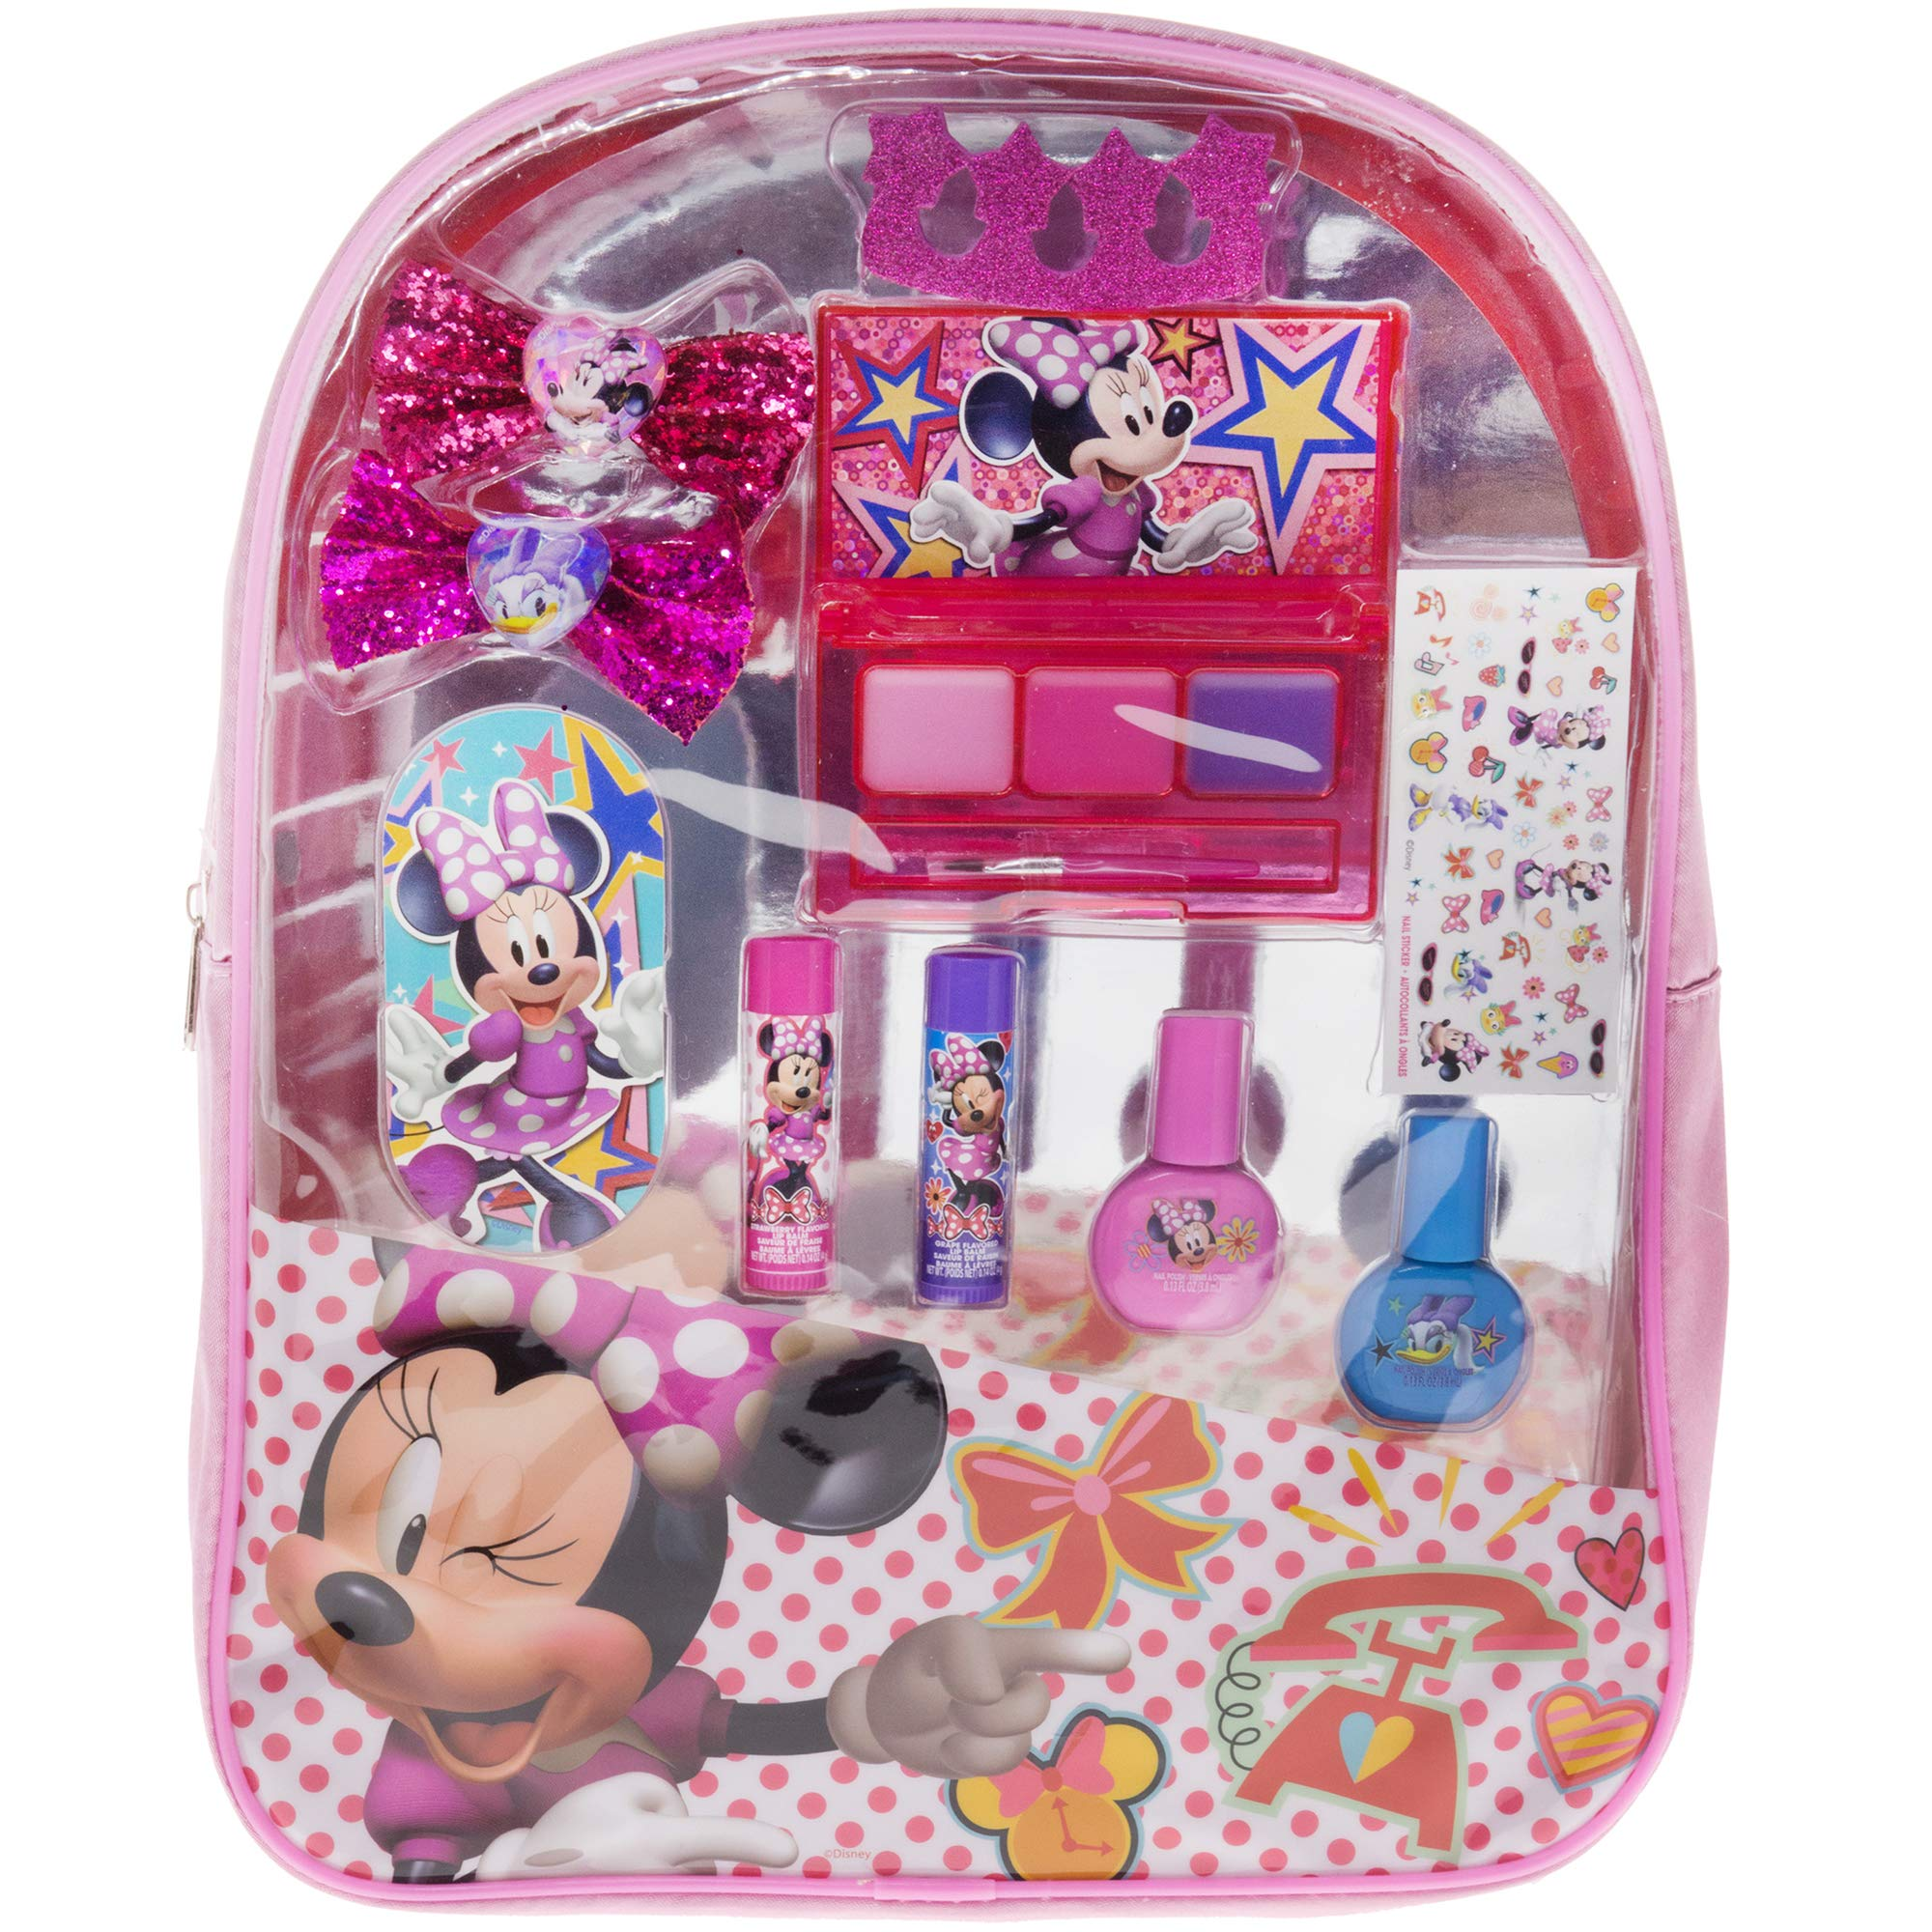 Disney MB0770SA Townley Girl Minnie Mouse Backpack Cosmetic Set, Pink by Disney